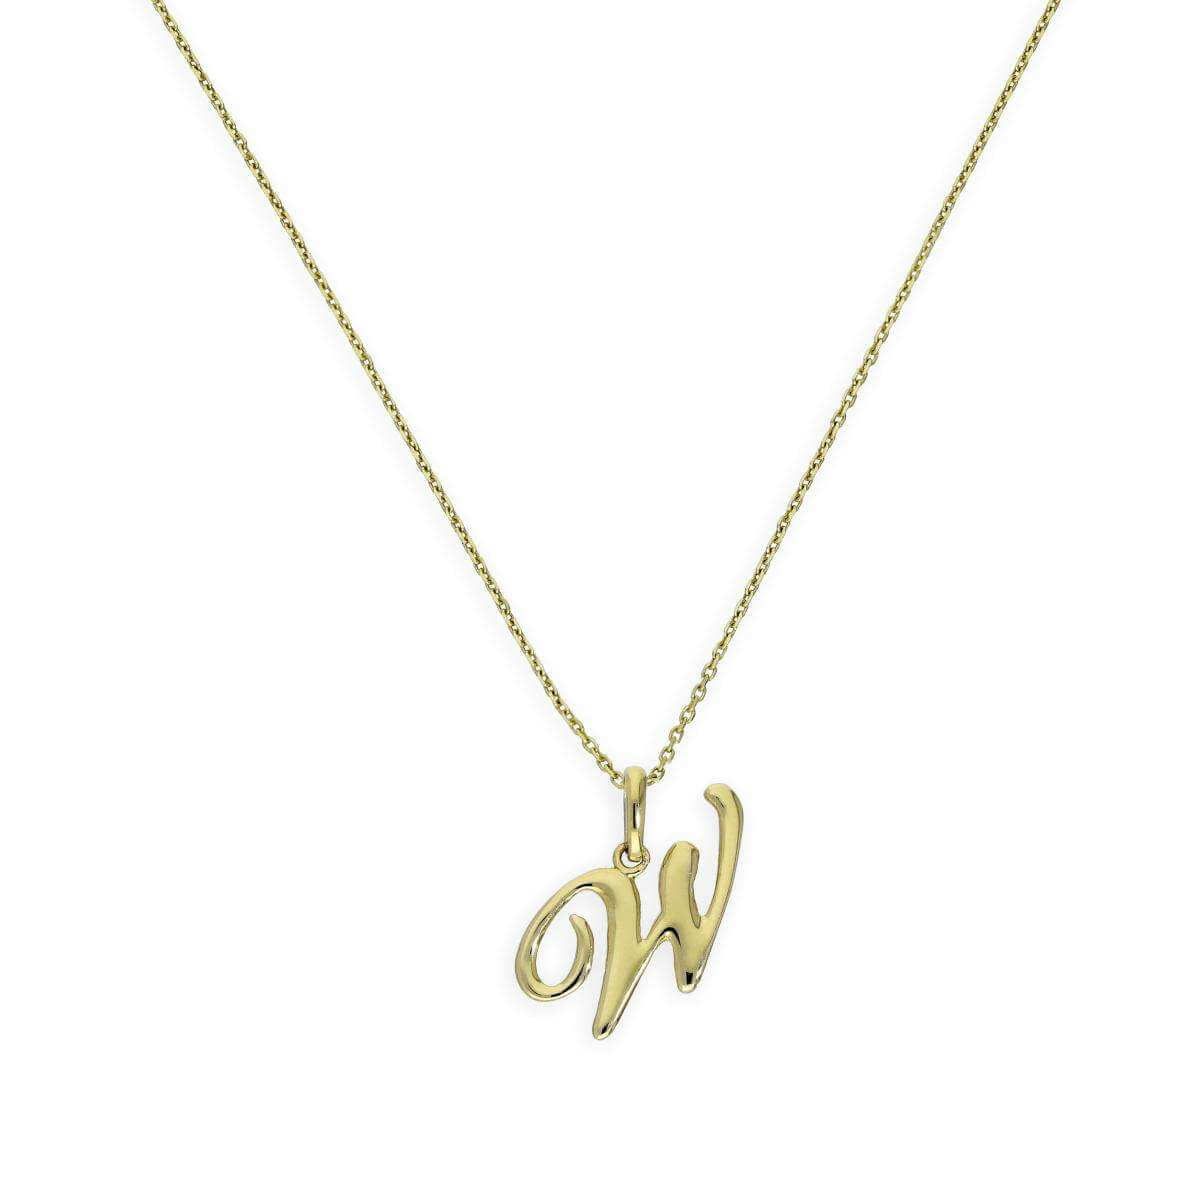 9ct Gold Fancy Calligraphy Script Letter W Pendant Necklace 16 - 20 Inches